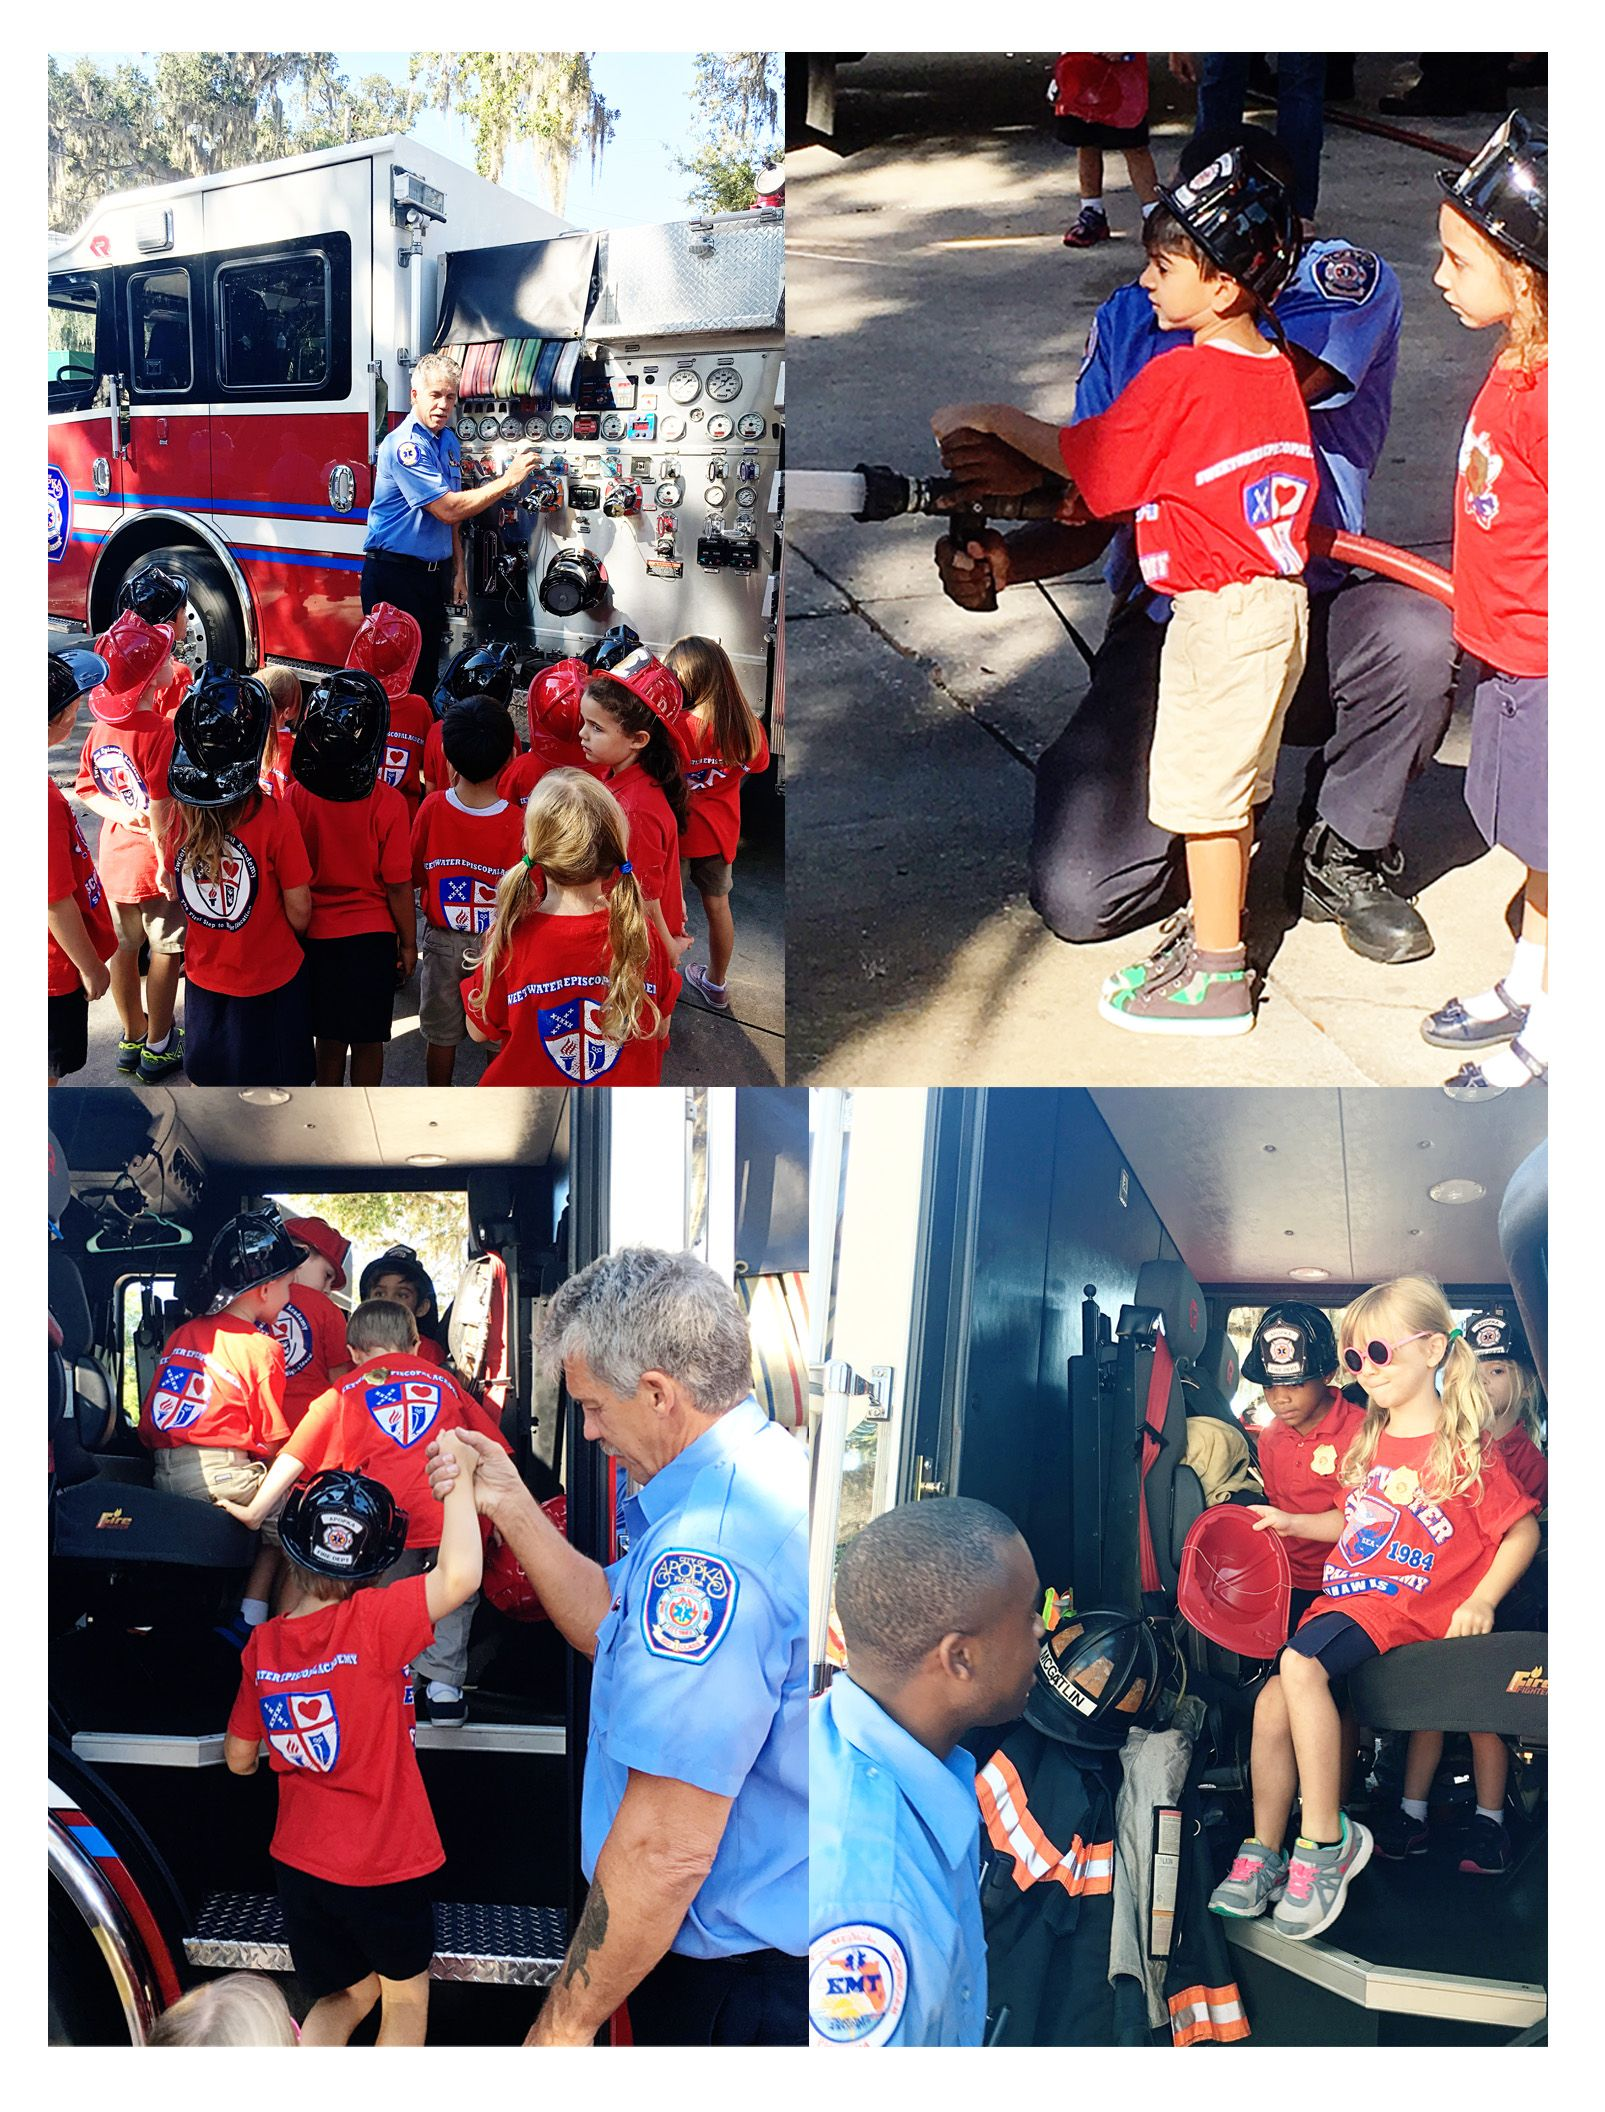 K4 Also Went On Their Field Trip Today To The Fire Station